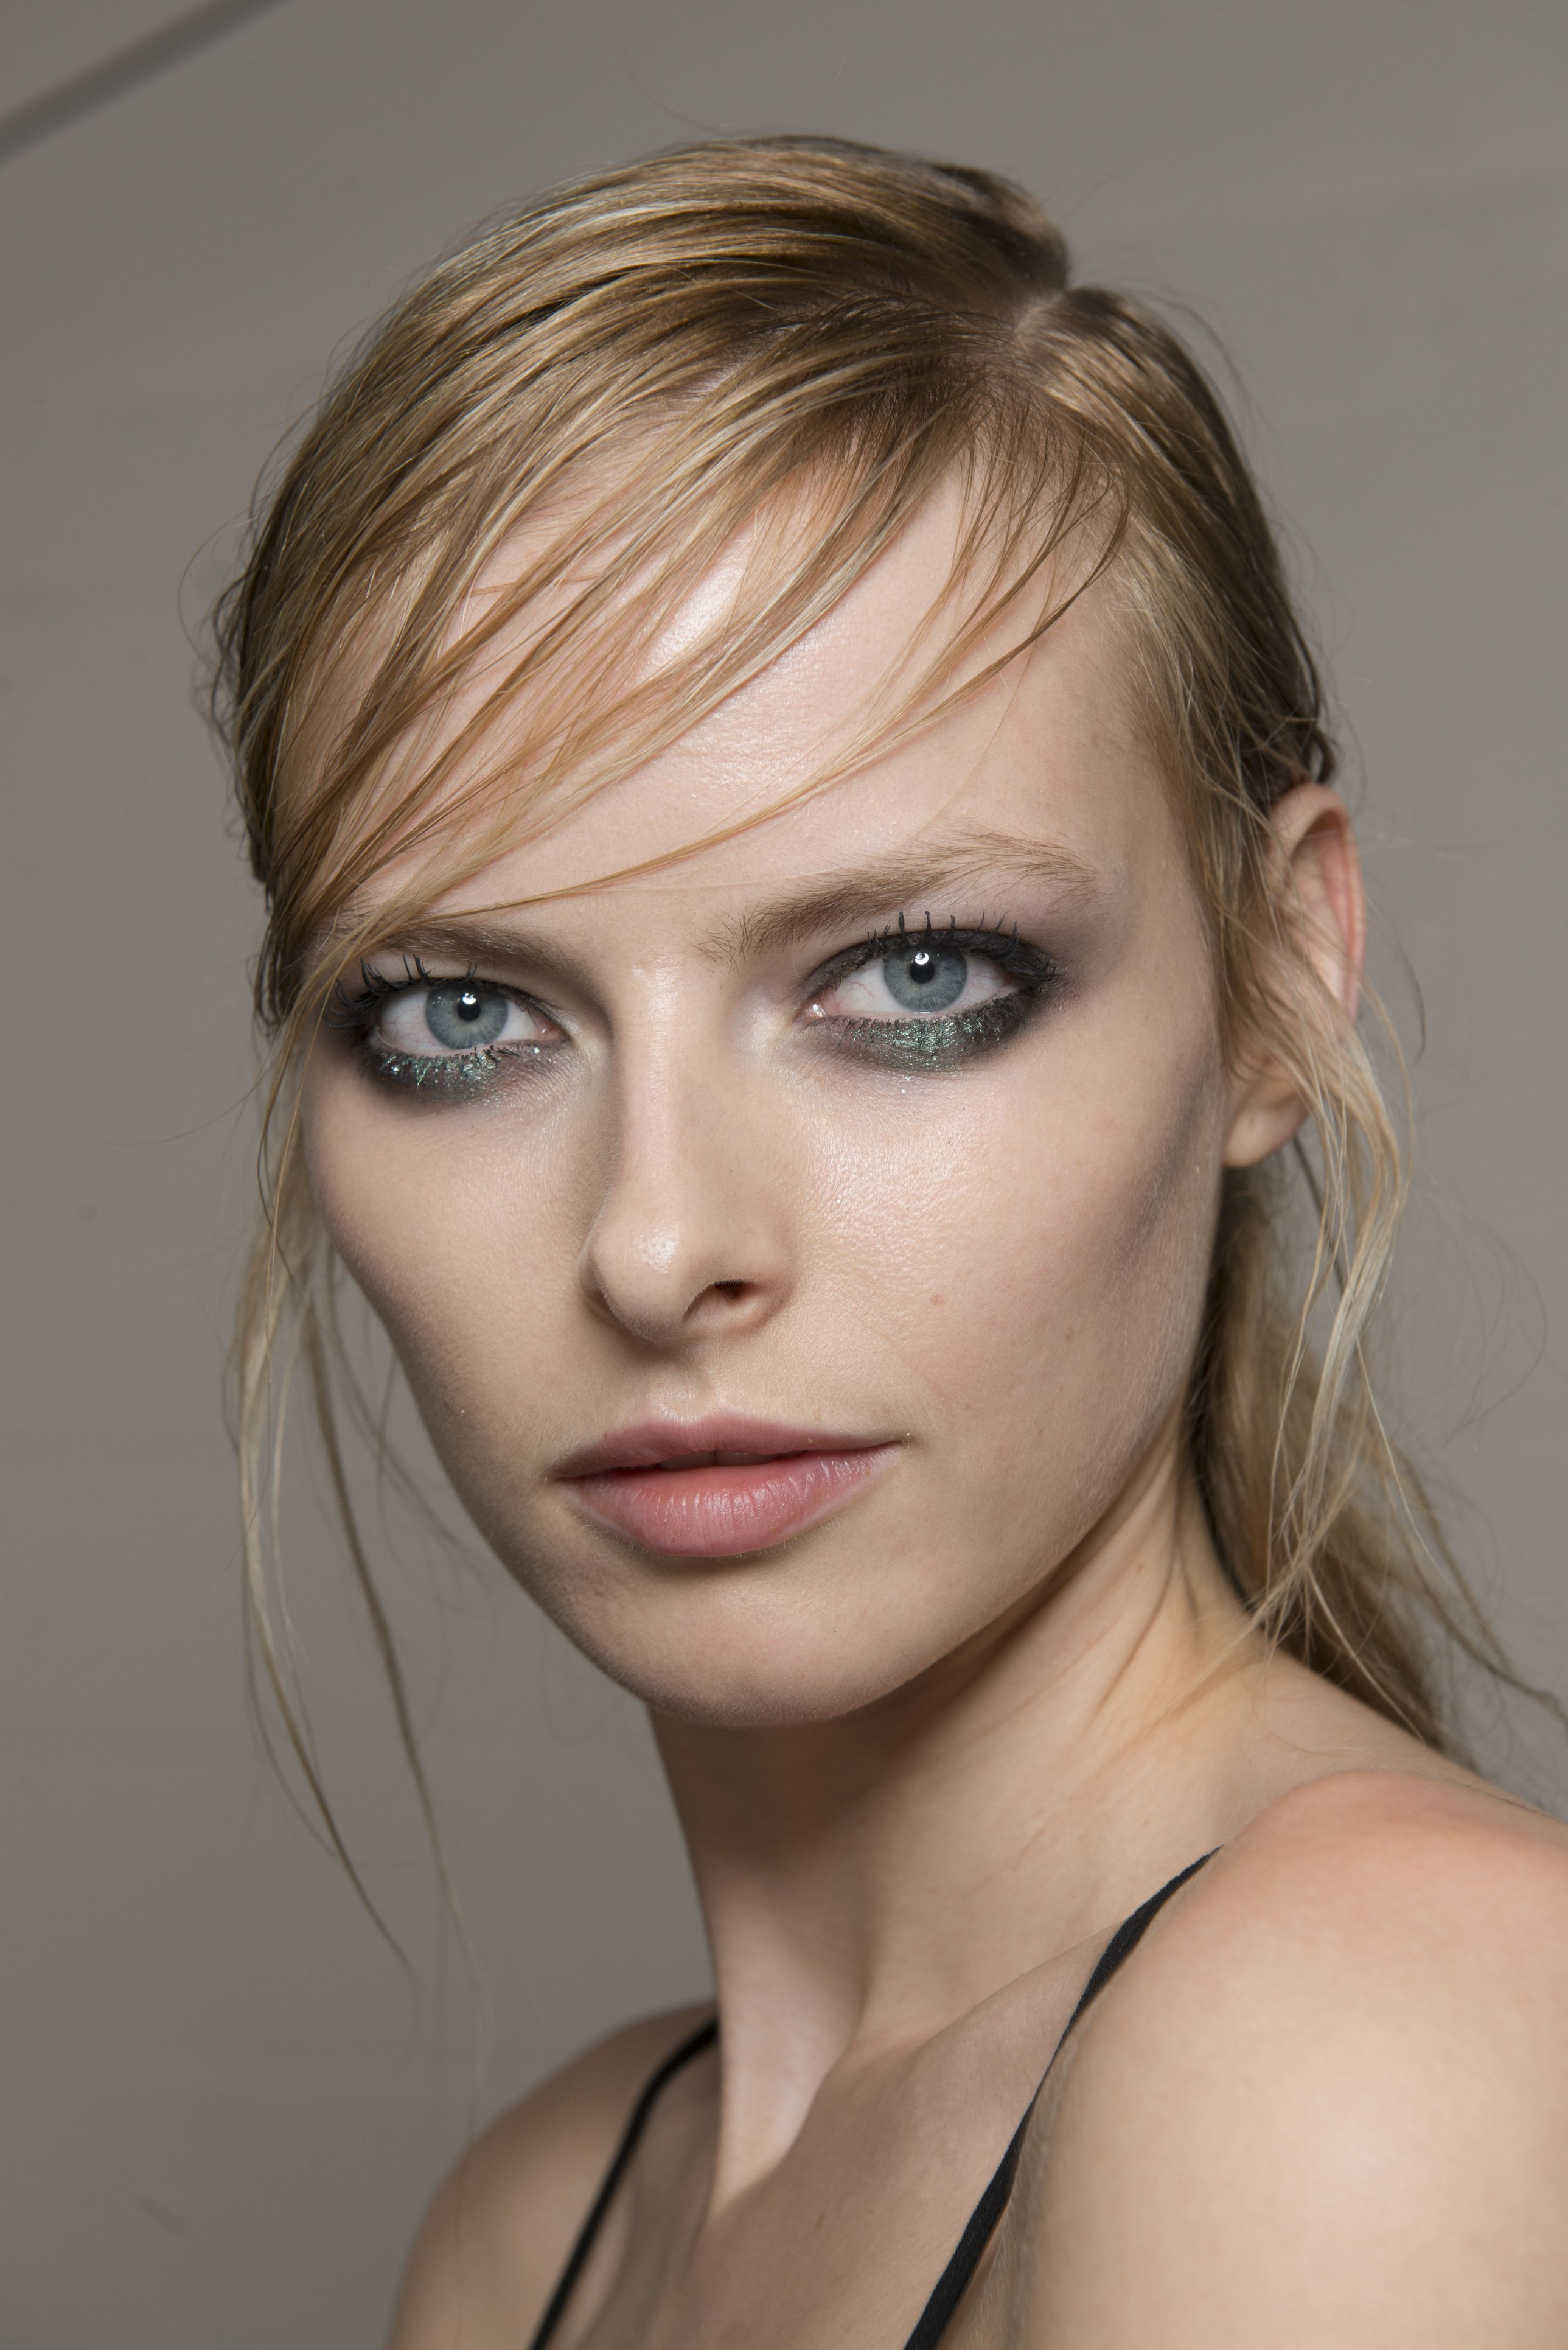 Mineral Makeup Trends for Spring recommend